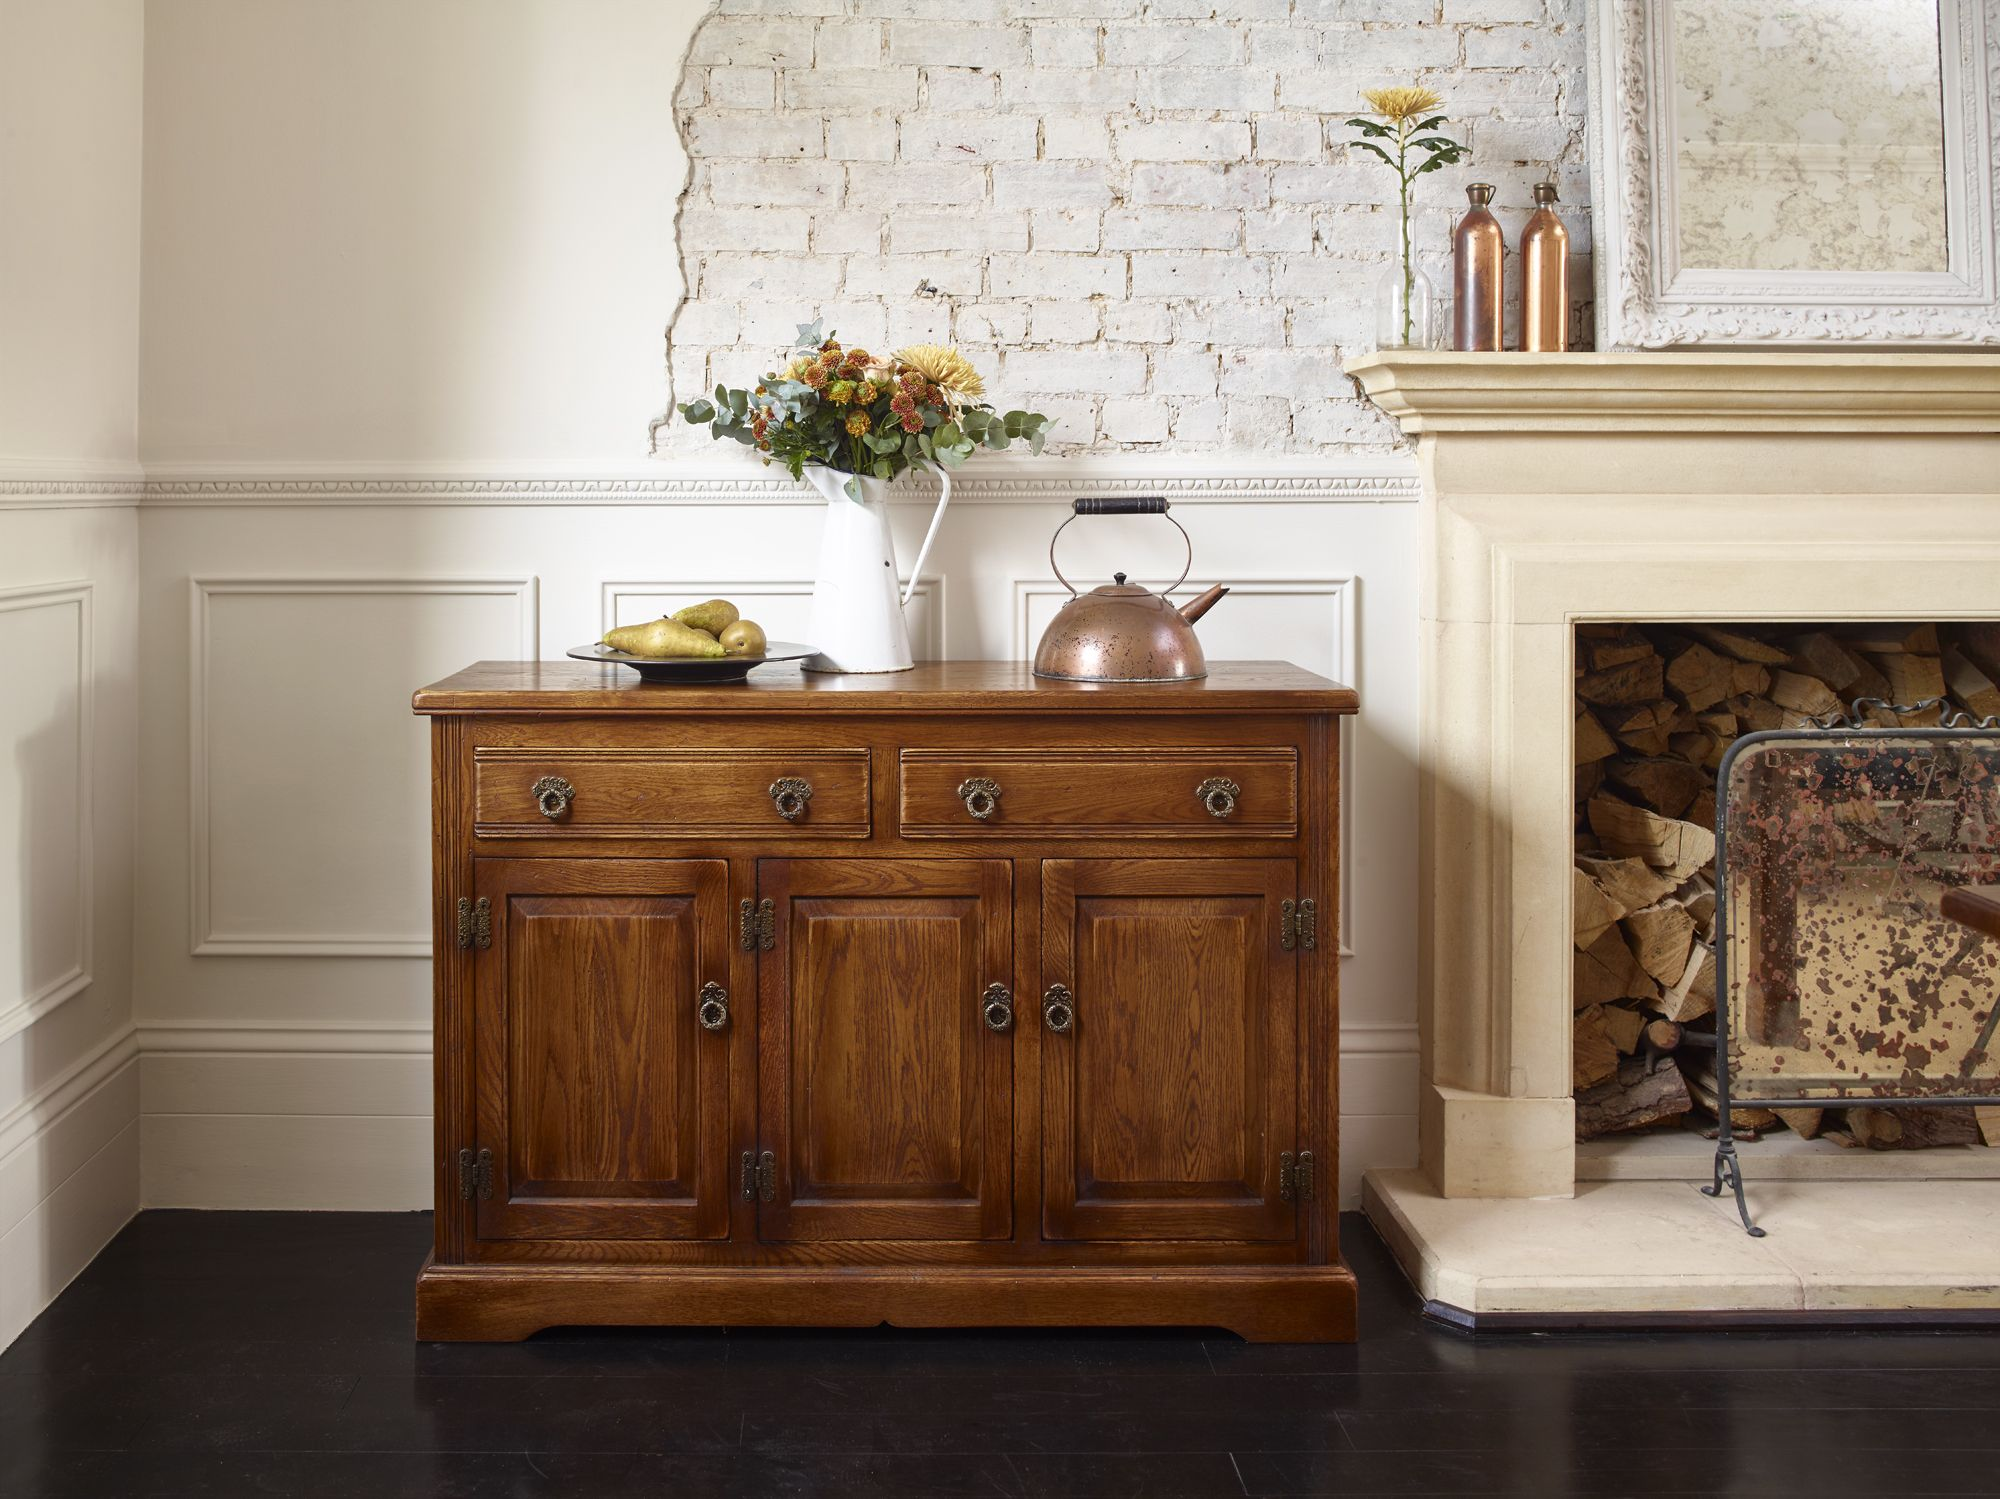 Our 2845 Old Charm Sideboard is a generous sideboard that offers two